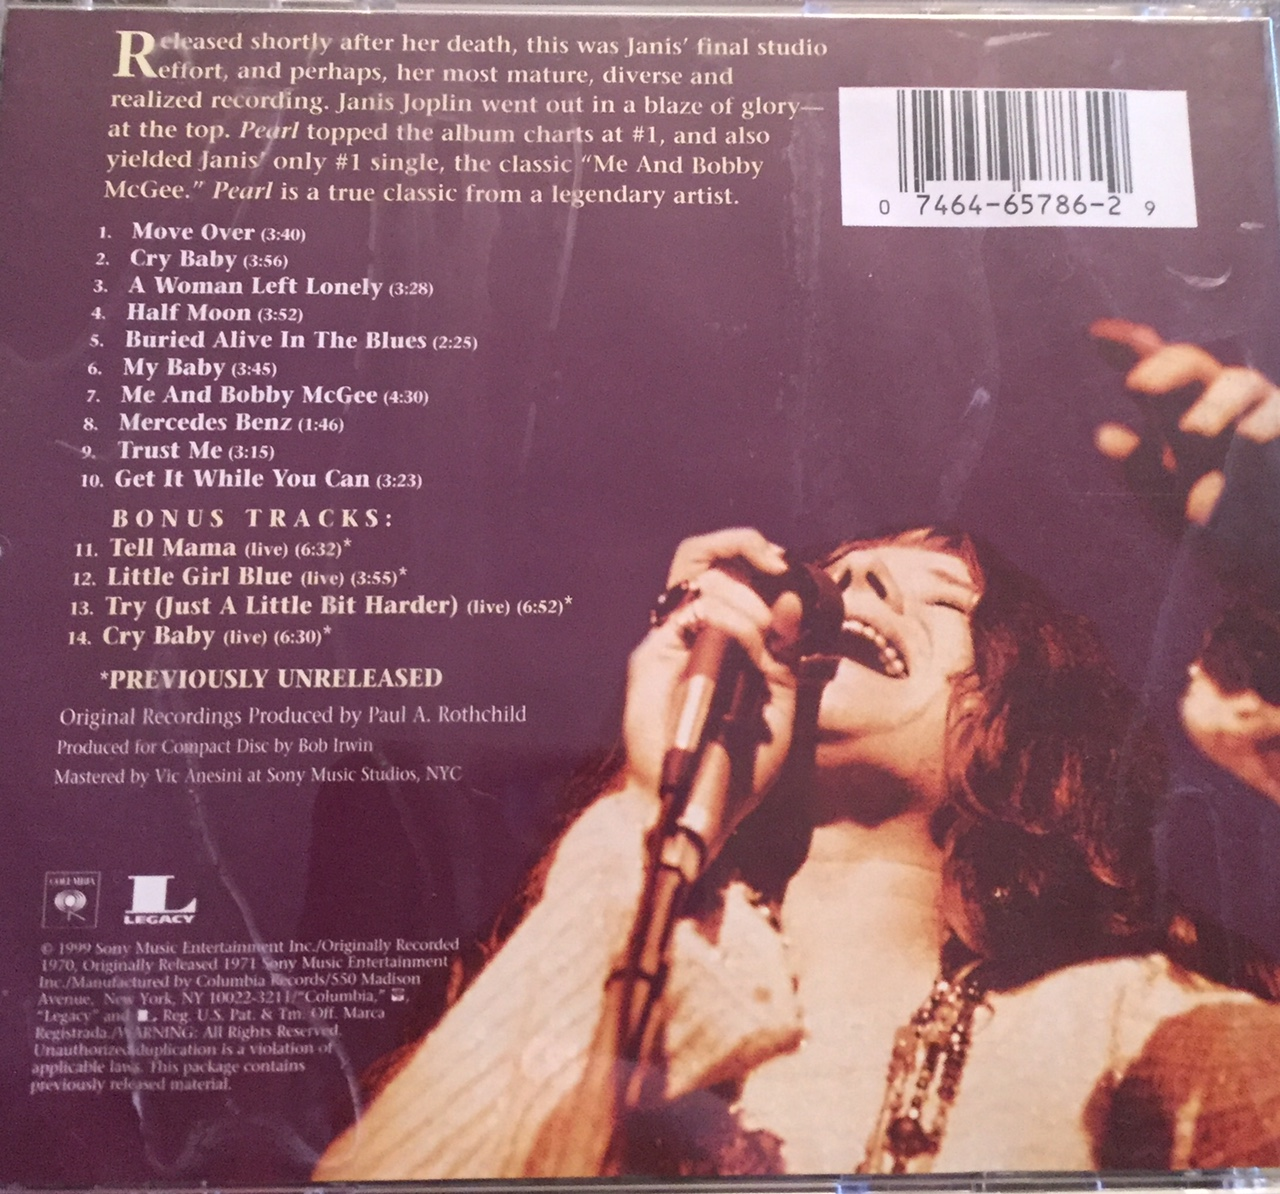 an introduction to the life and music by janis joplin See also janis joplin albums display [introduction] (1969-07-xx: dick cavett show) intruder intuder see also janis joplin music videos.